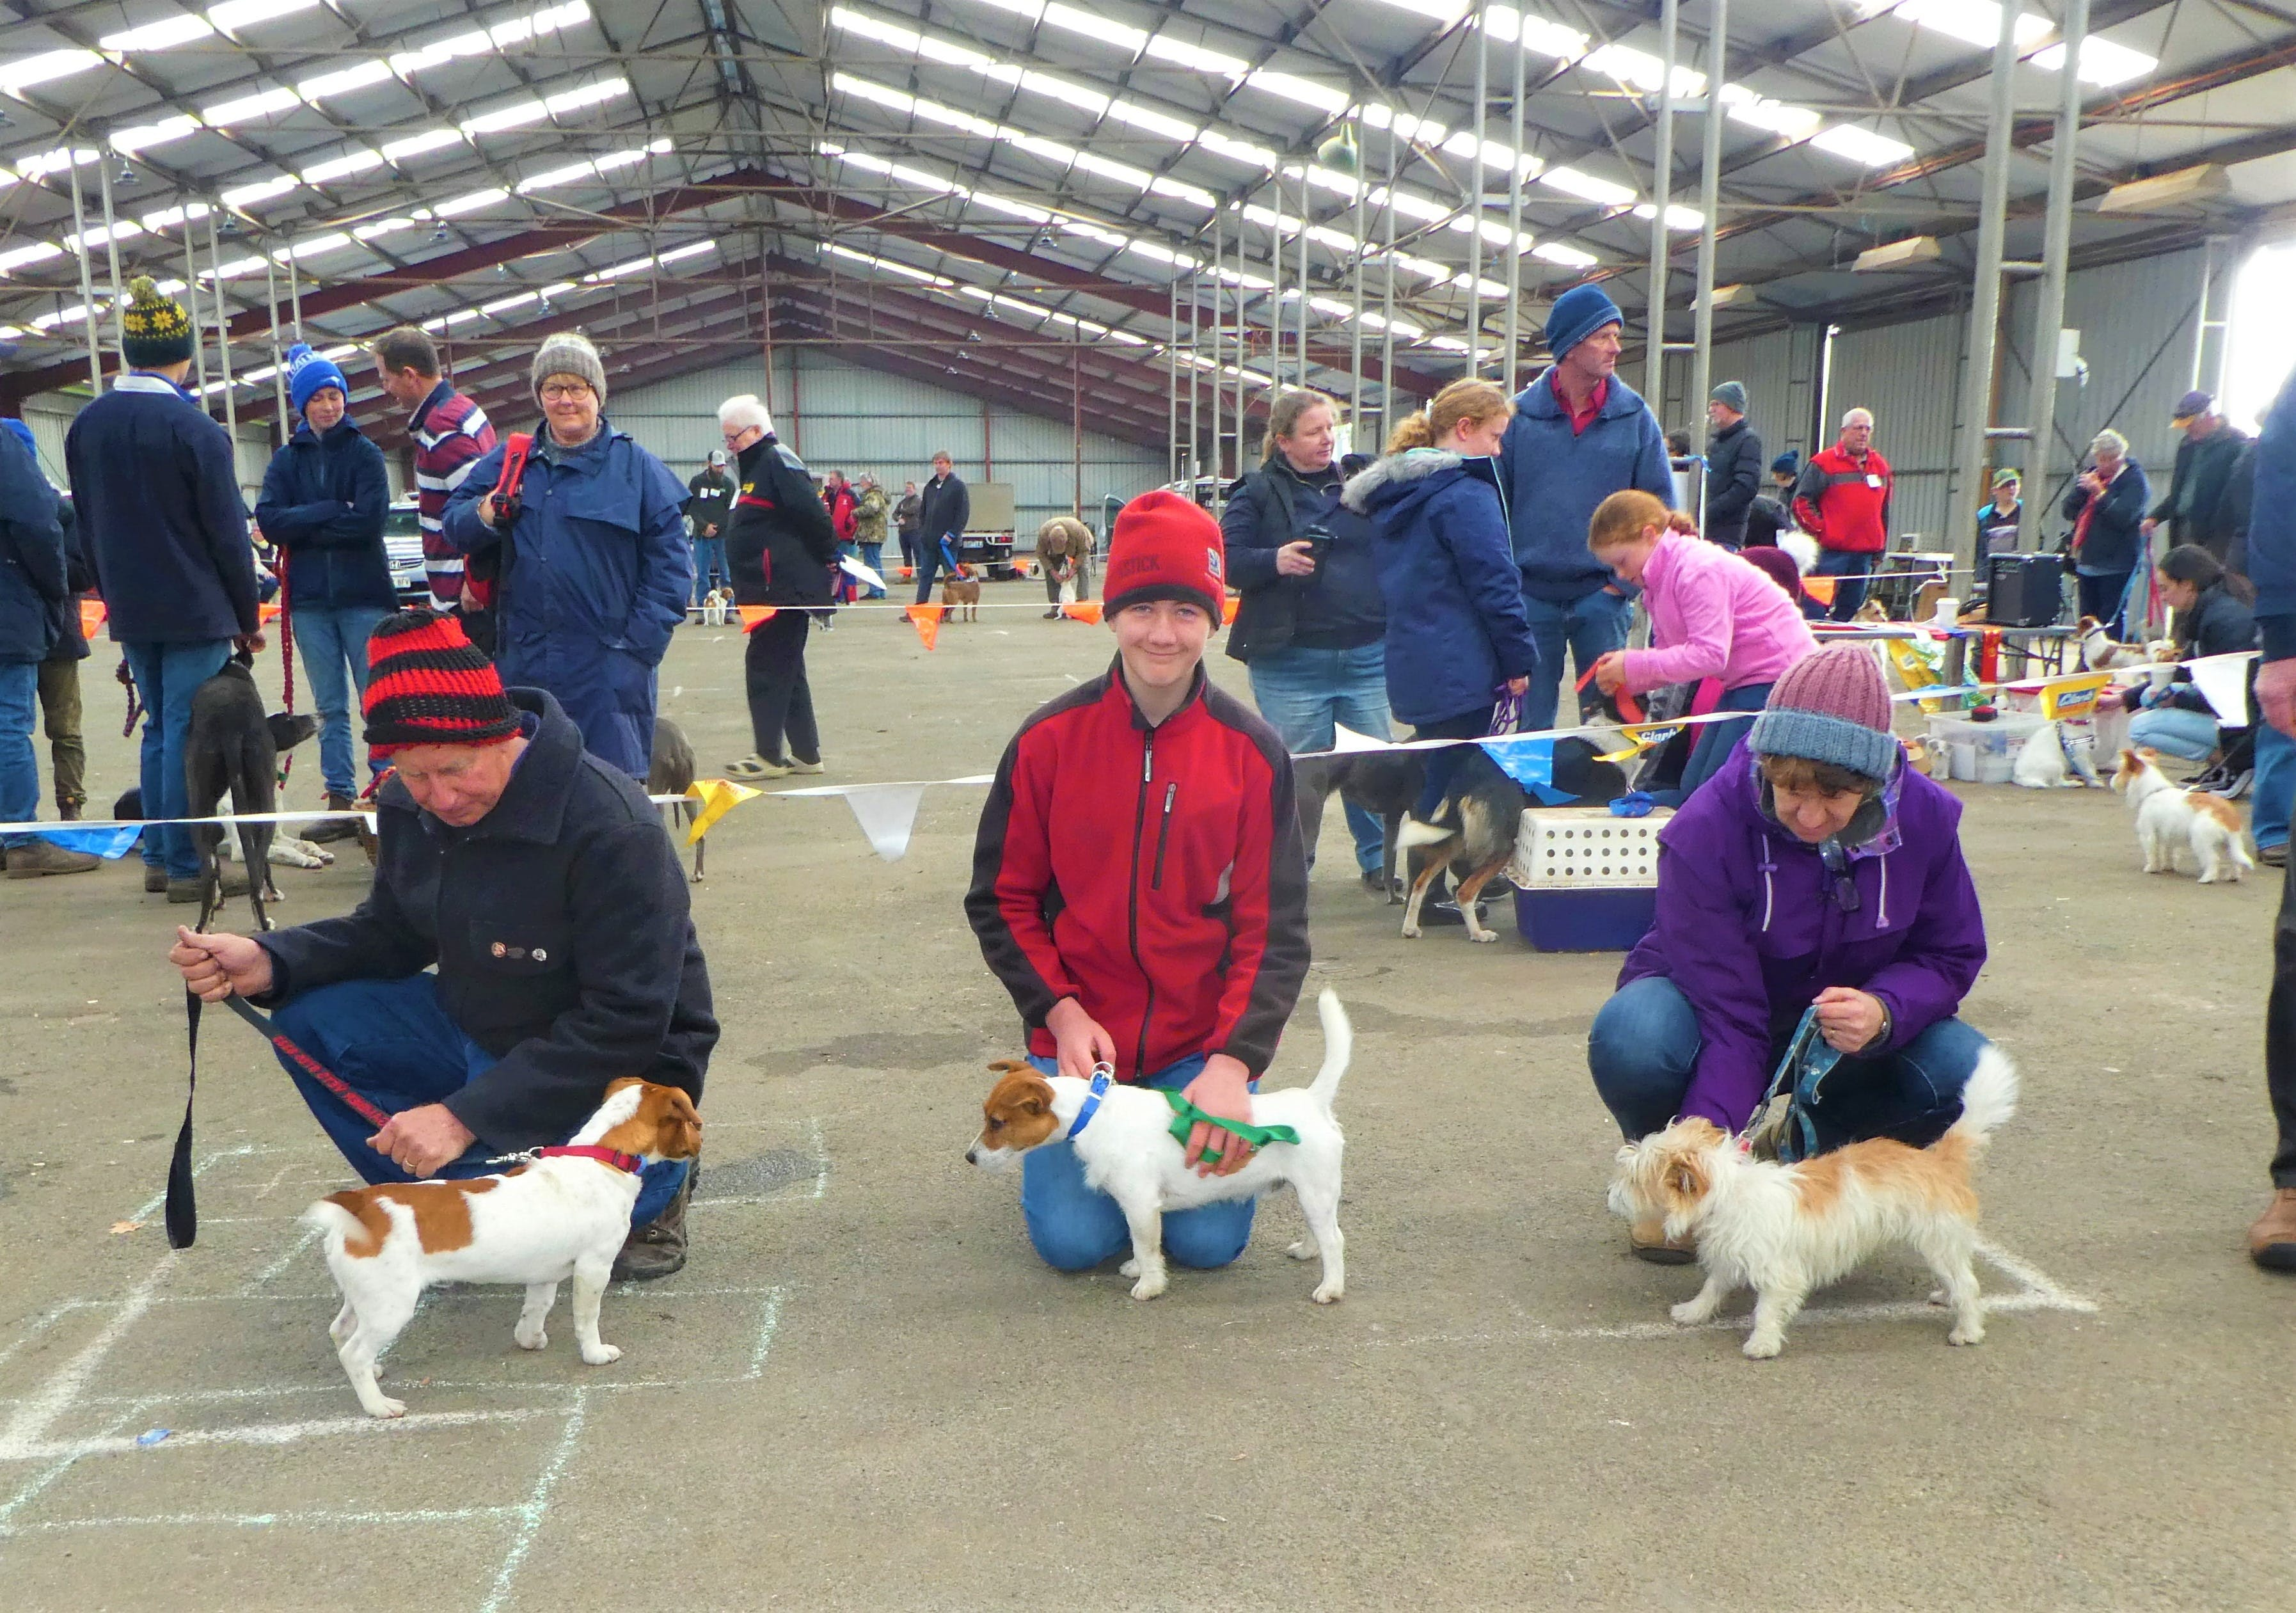 Hamilton Jack Russell Terrier and Hunting Dog Show - Accommodation Whitsundays